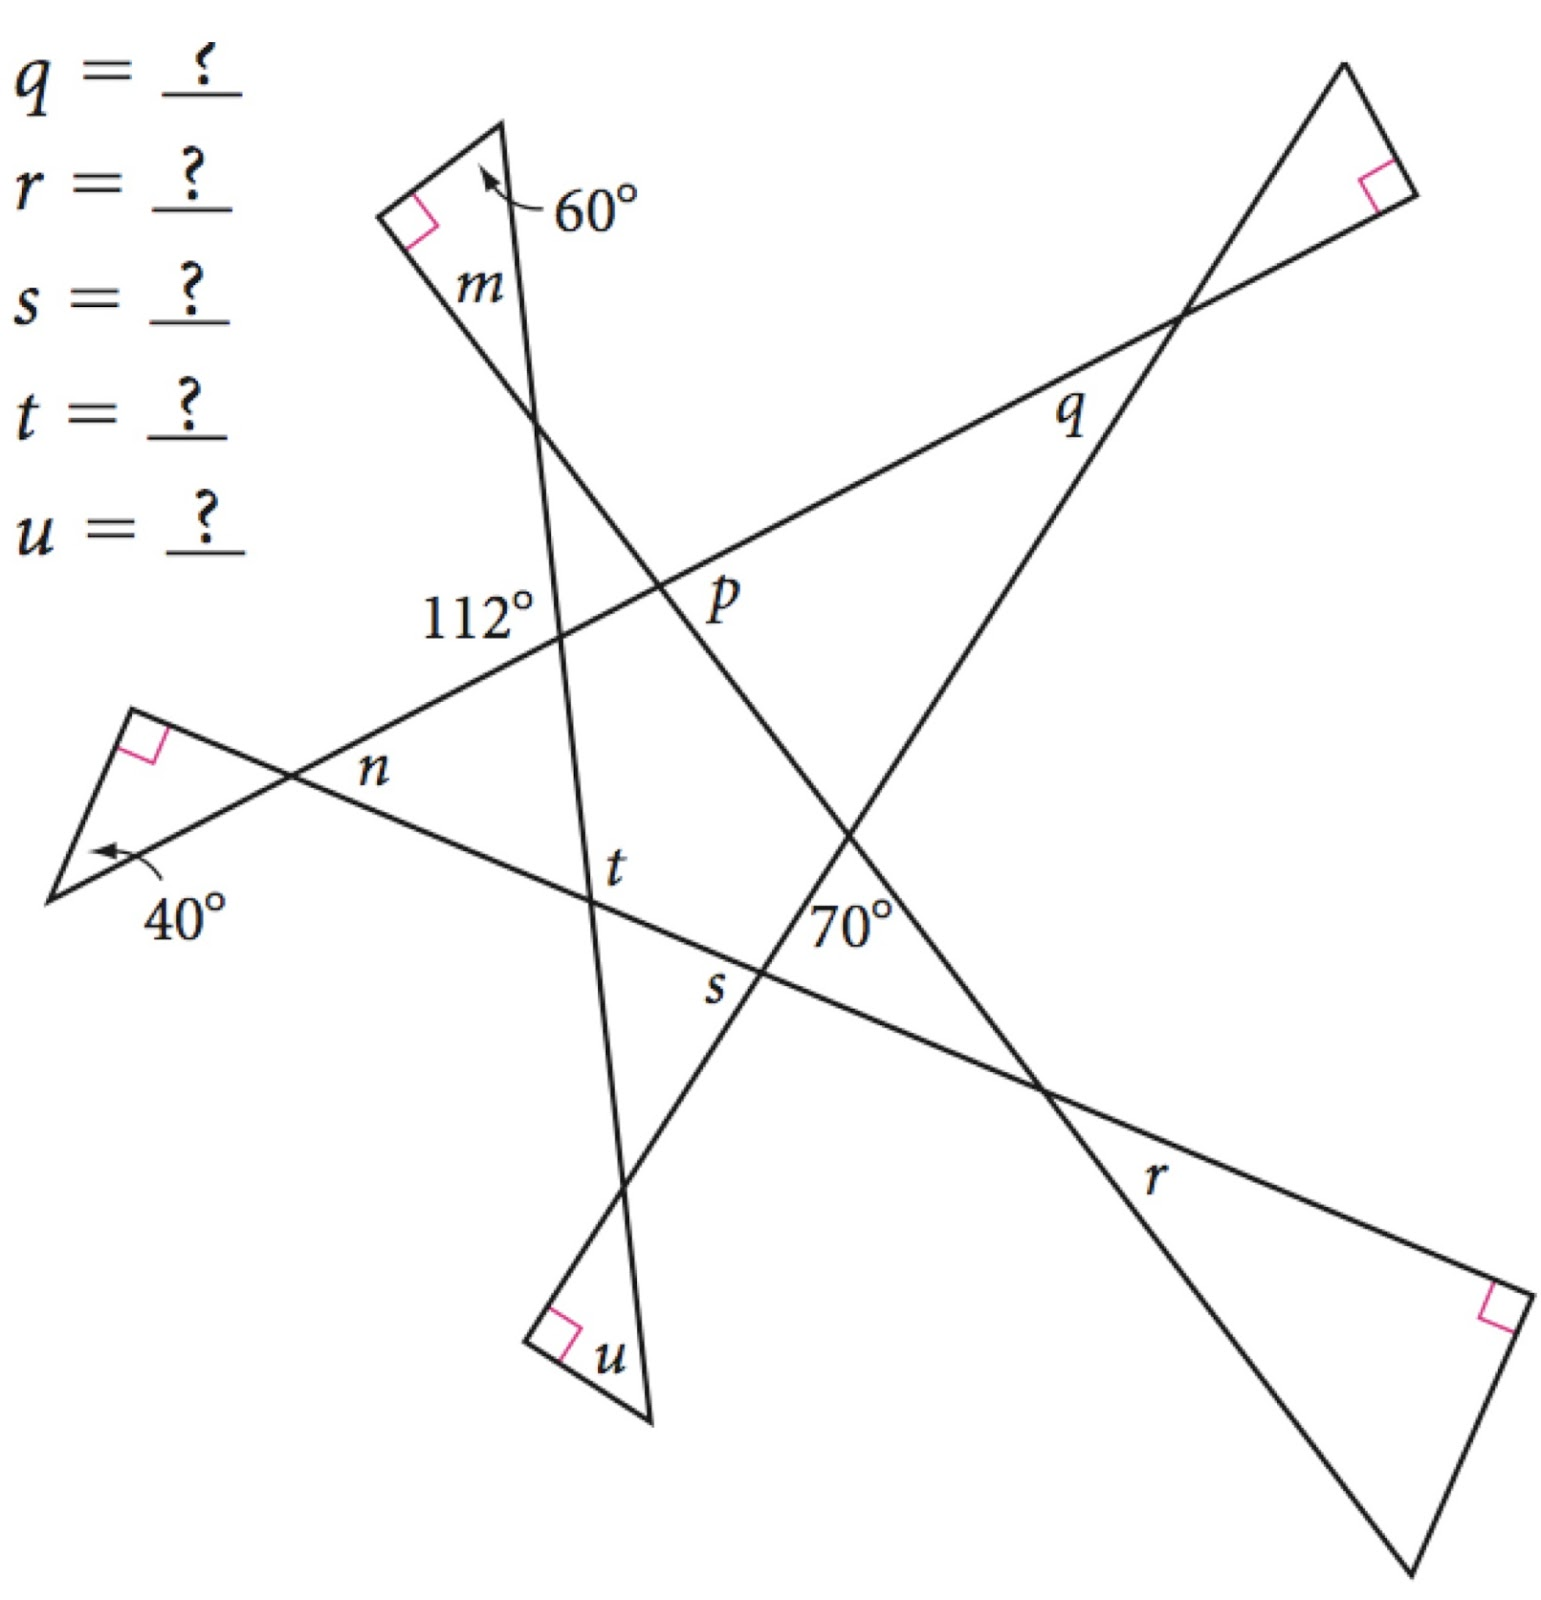 worksheet Geometry Missing Angles Worksheet geometry angles free download of worksheet and images to use on your own pages or quizzes math for sixth grade pinterest